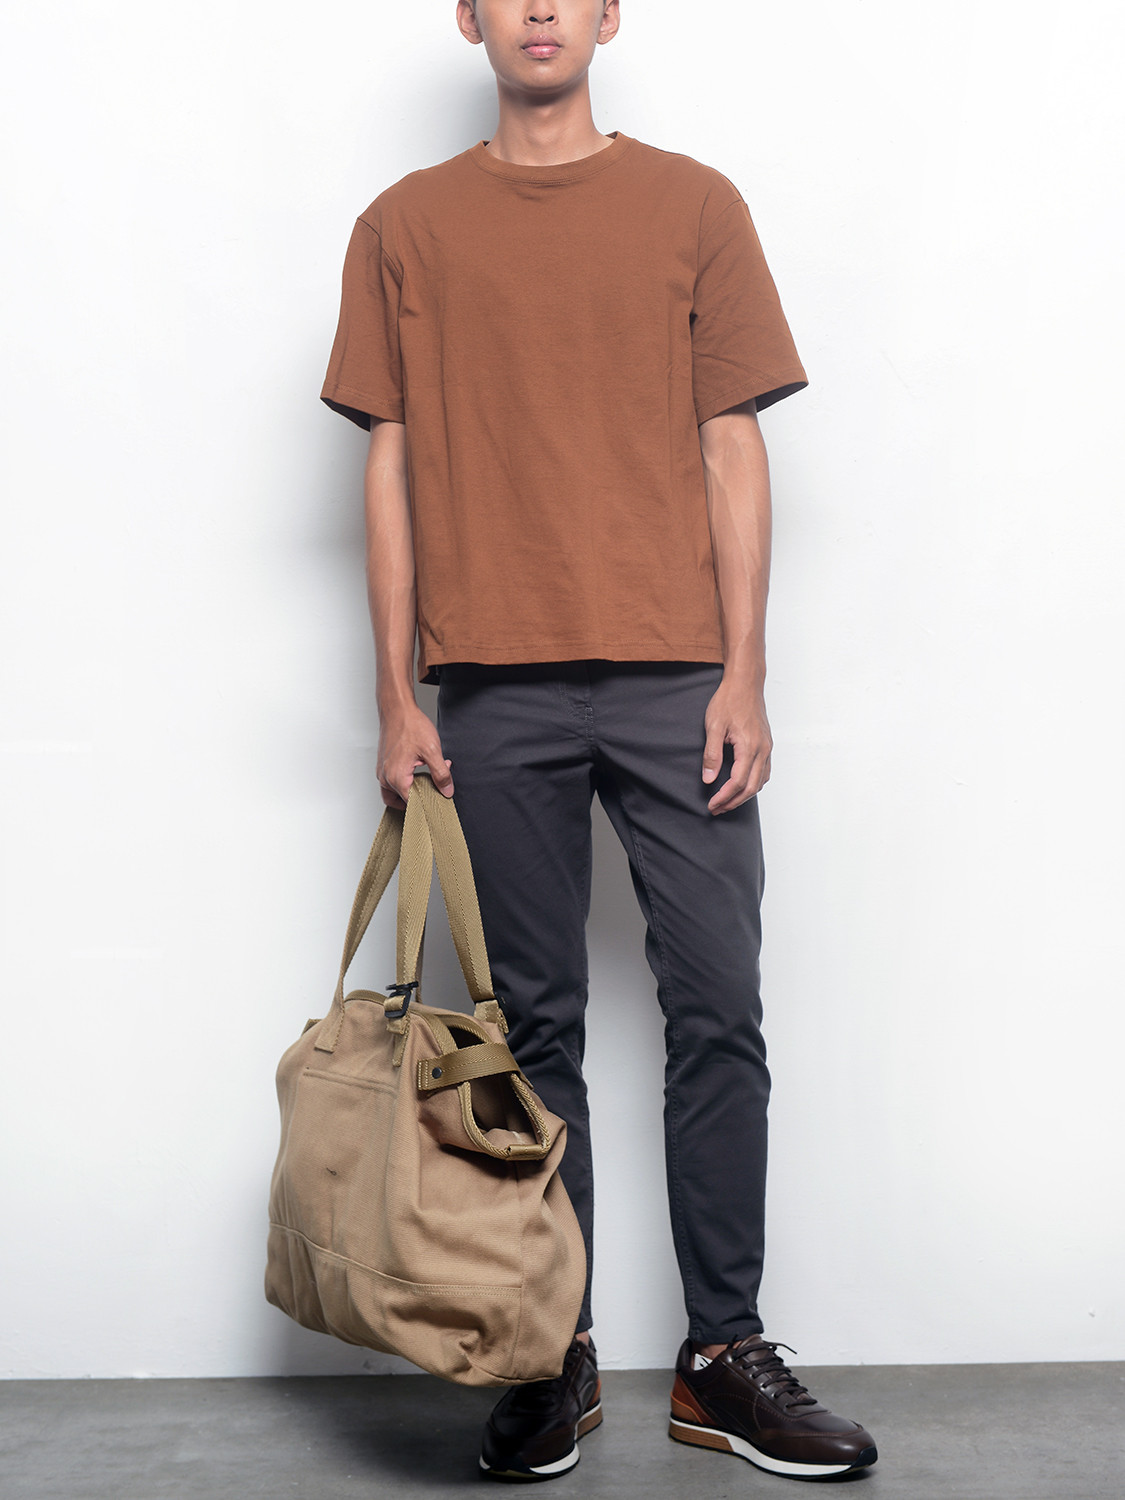 Men's outfit idea for 2021 with neutral plain crew neck t-shirt, grey chinos, brown everyday trainers. Suitable for spring, summer and autumn.